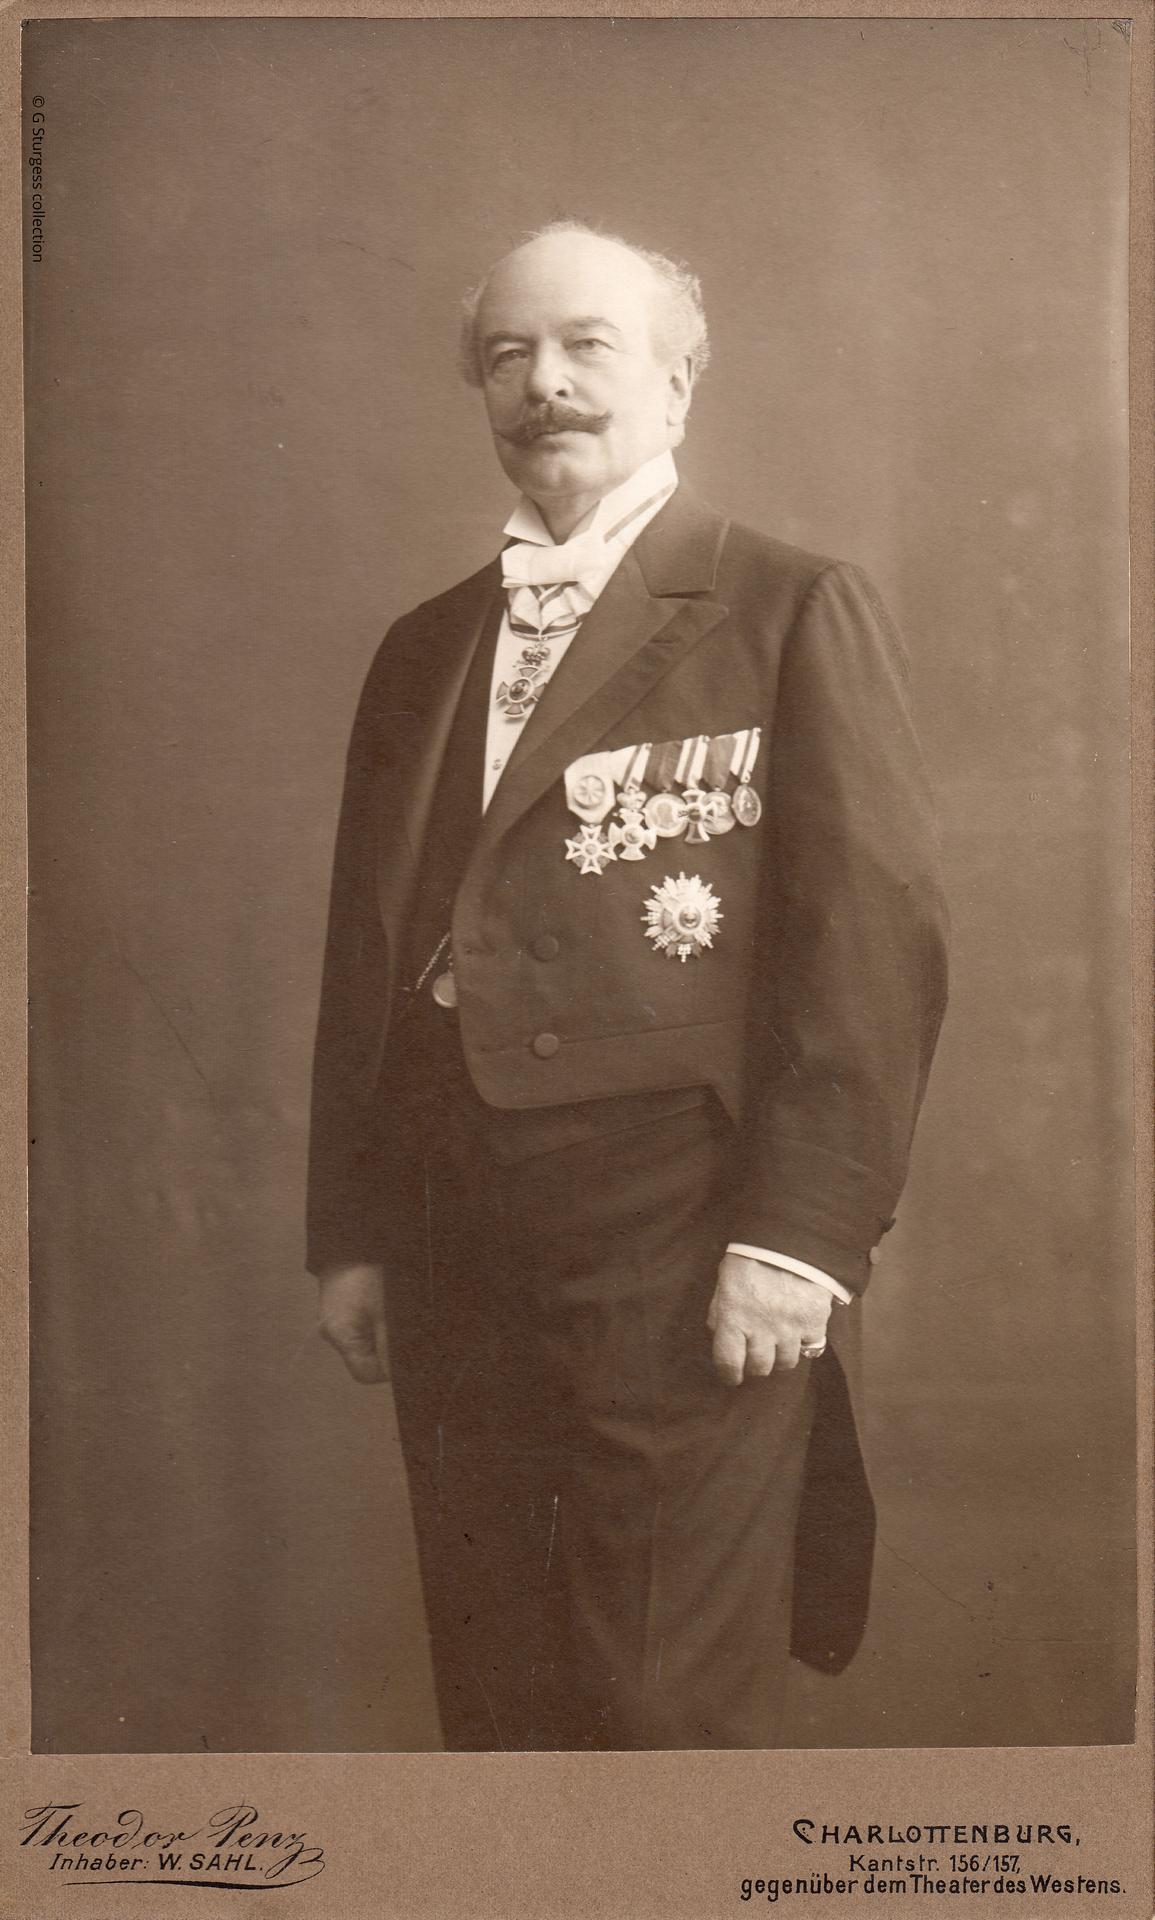 Photograph of Georg Luger taken at his 40th wedding anniversary, February, 1913